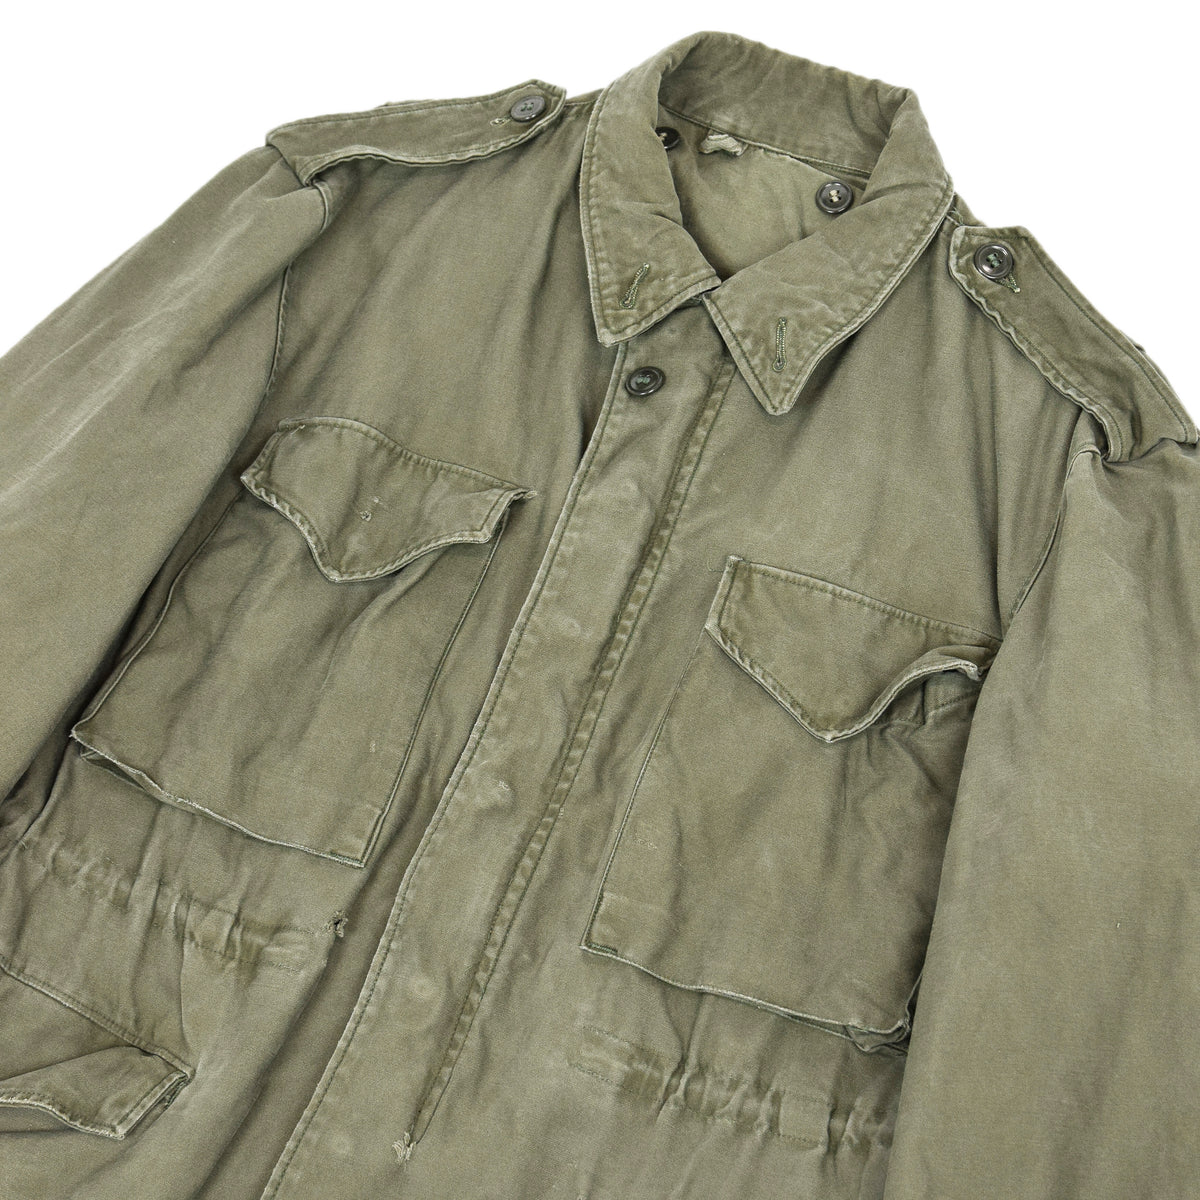 Vintage 50s M-1951 Korean War US Army Field Jacket OG-107 Olive Green M chest